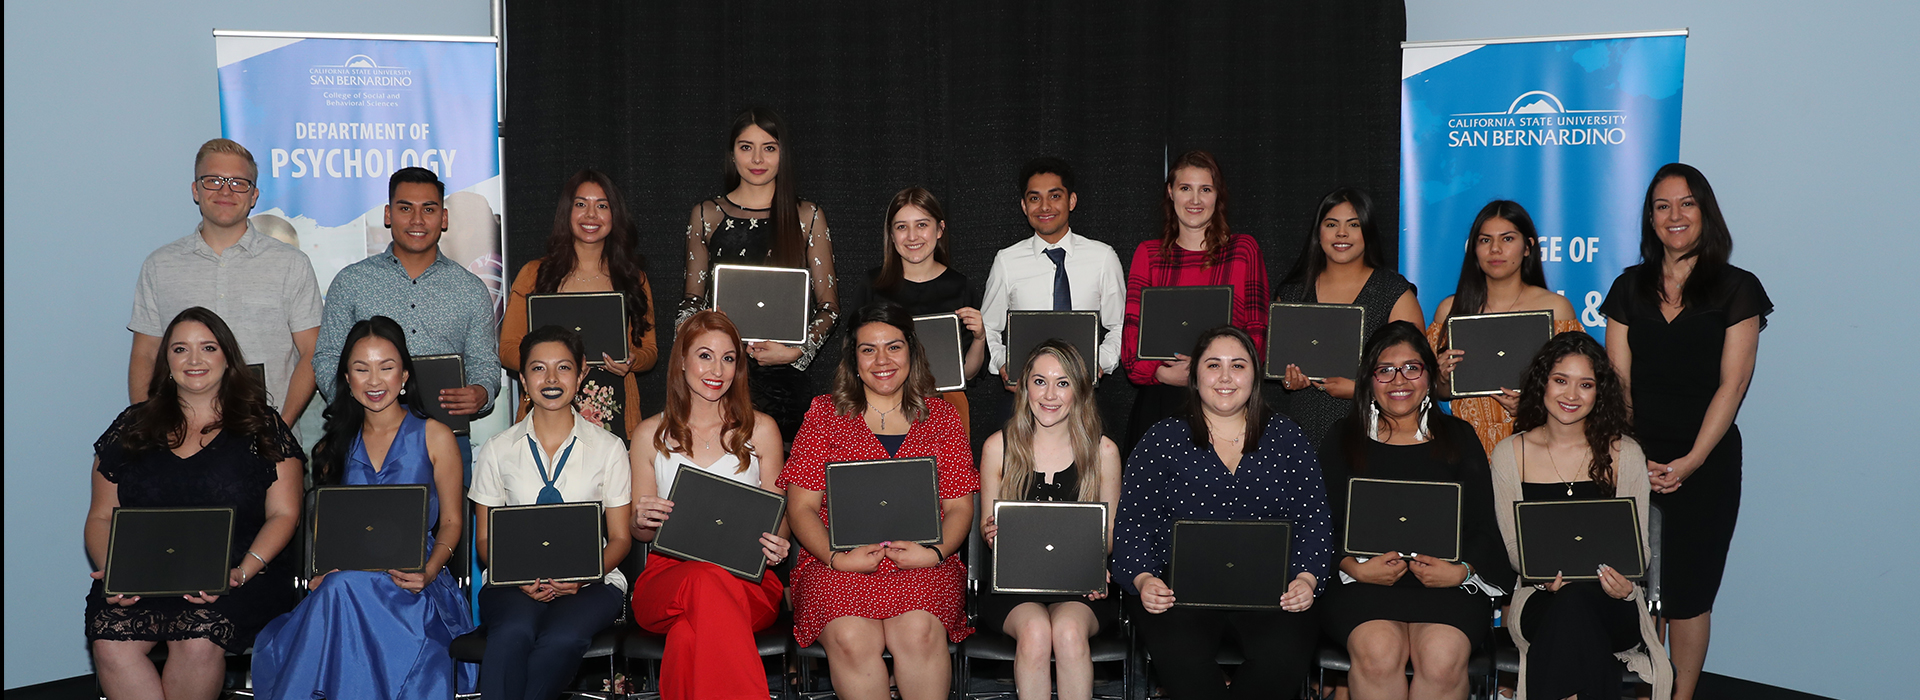 College of Social and Behavioral Sciences hosts Honors and Awards Ceremony